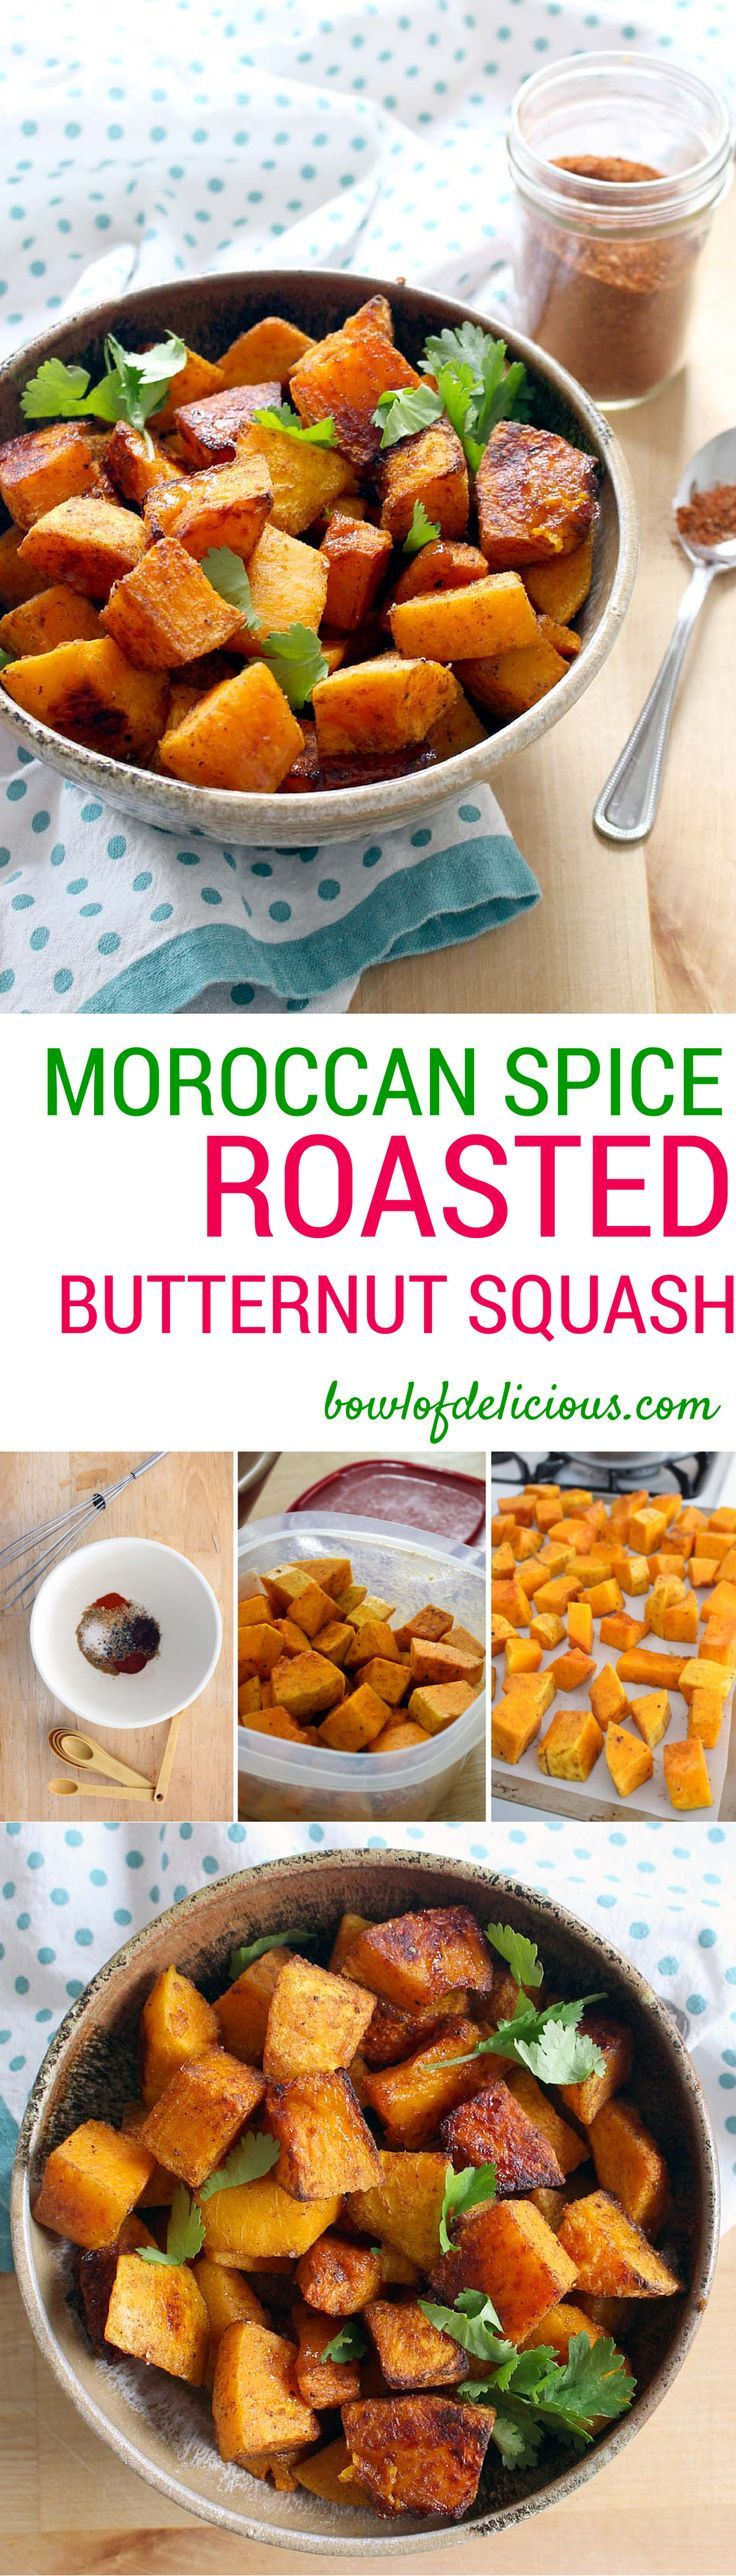 ... Moroccan Spices on Pinterest | Spice Mixes, Spice Blends and Spices